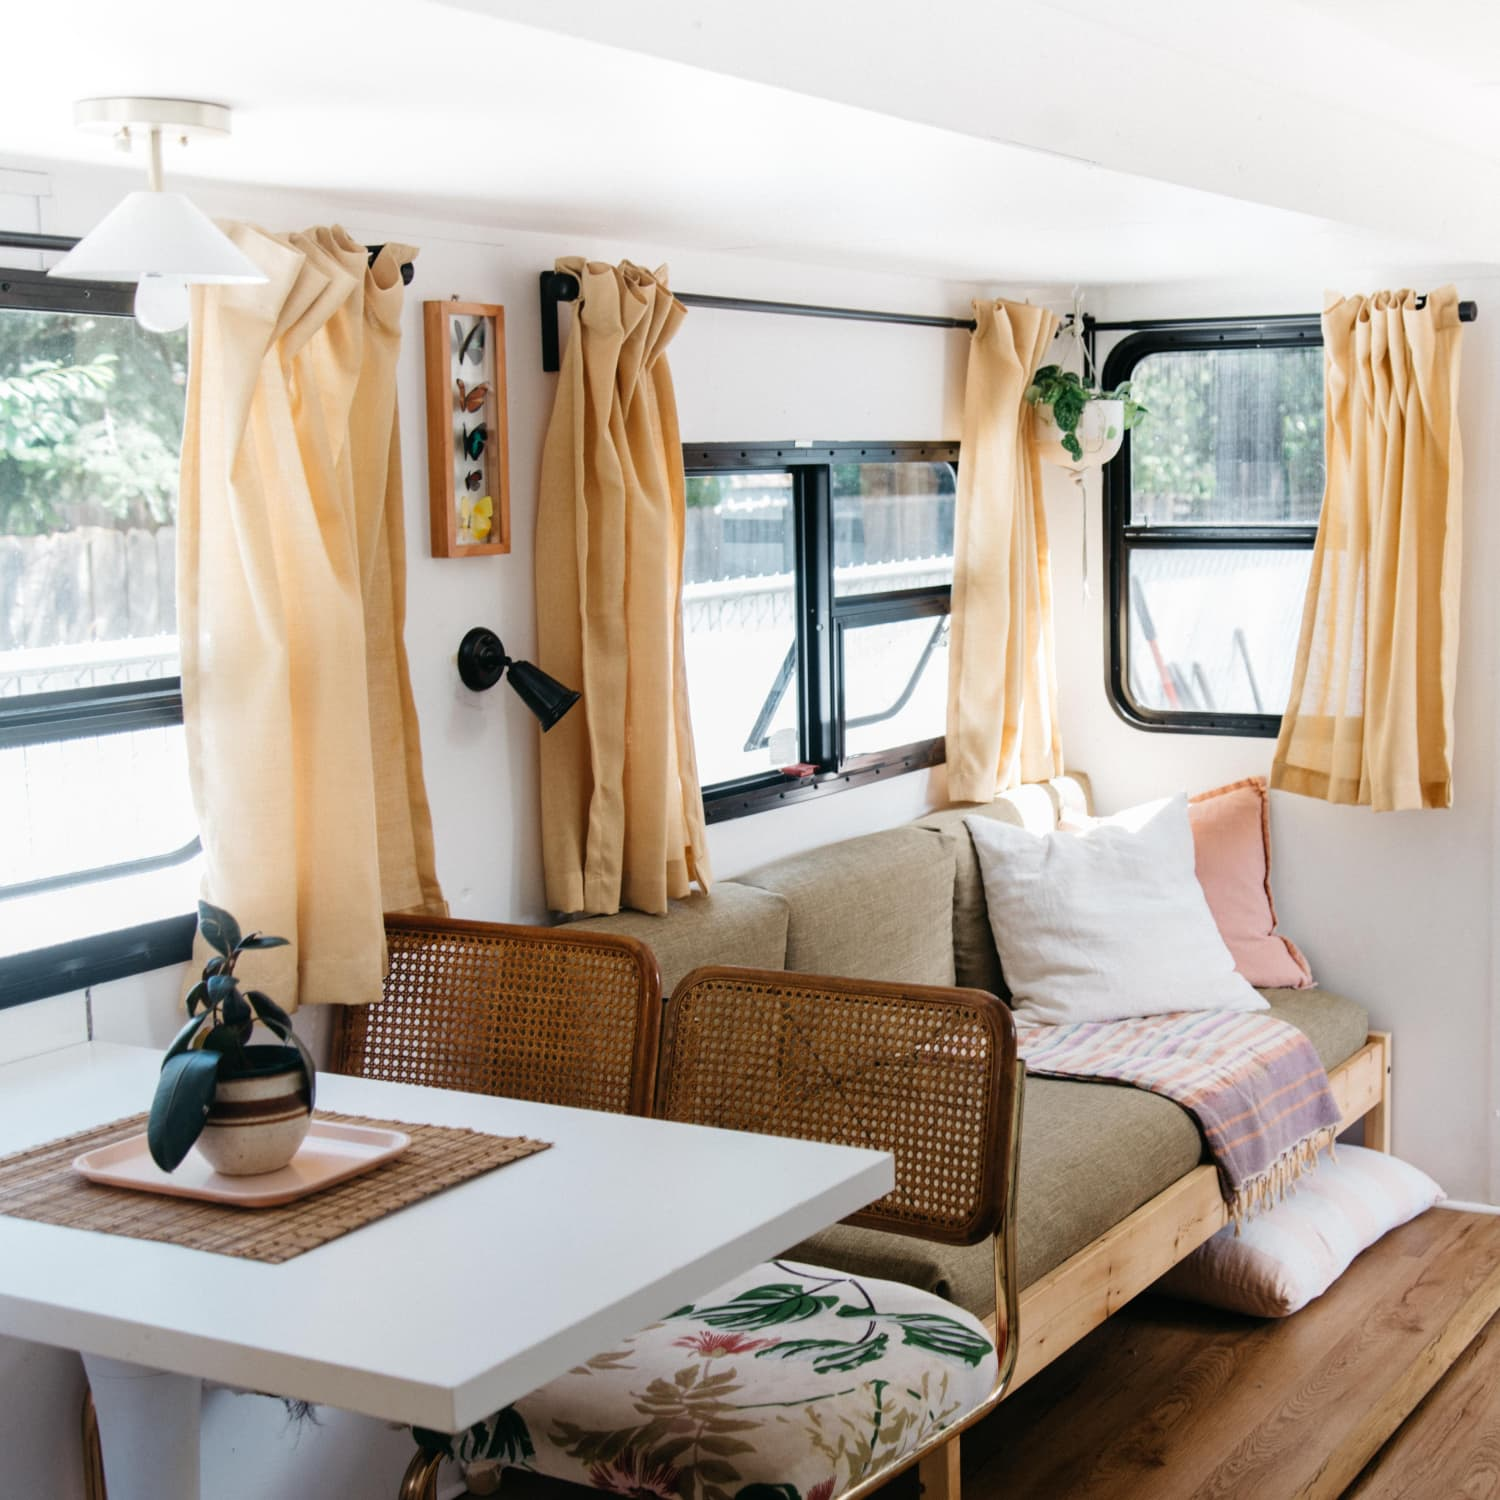 Tour A Tiny Home Rv Remodeled Fifth Wheel Trailer Apartment Therapy